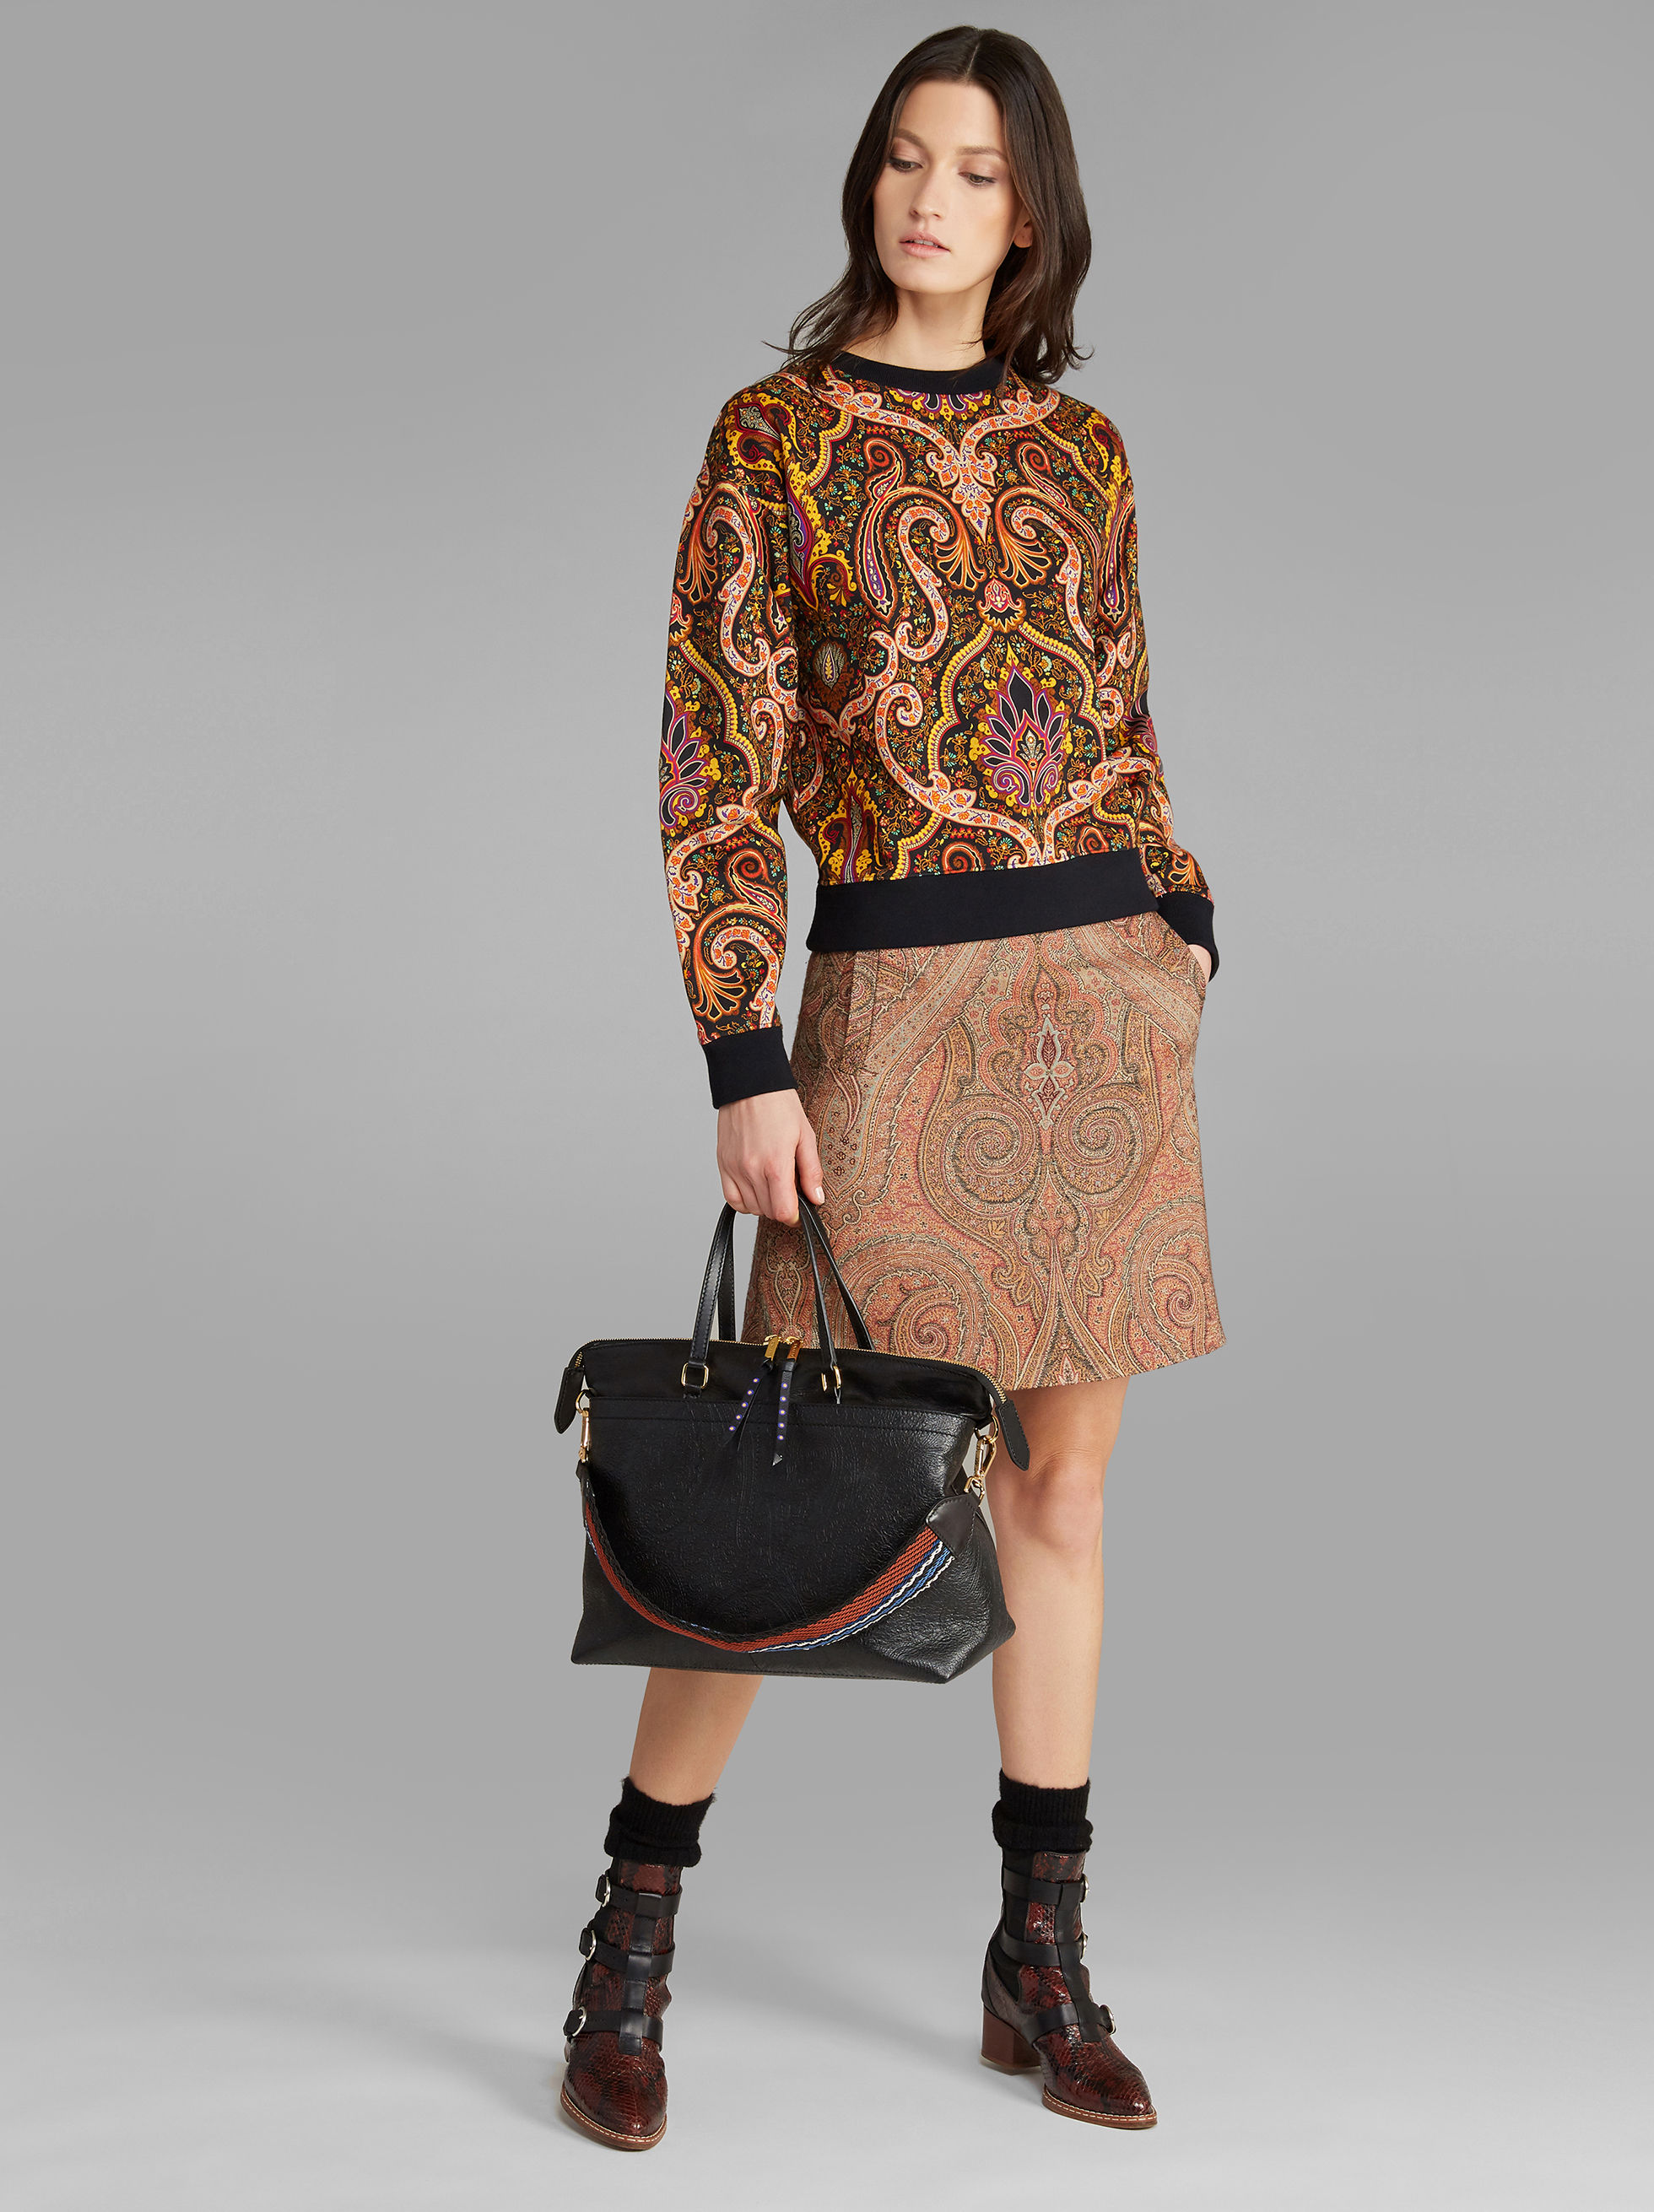 ETRACTIVE TEXTURED PAISLEY-PRINT SHOPPER BAG